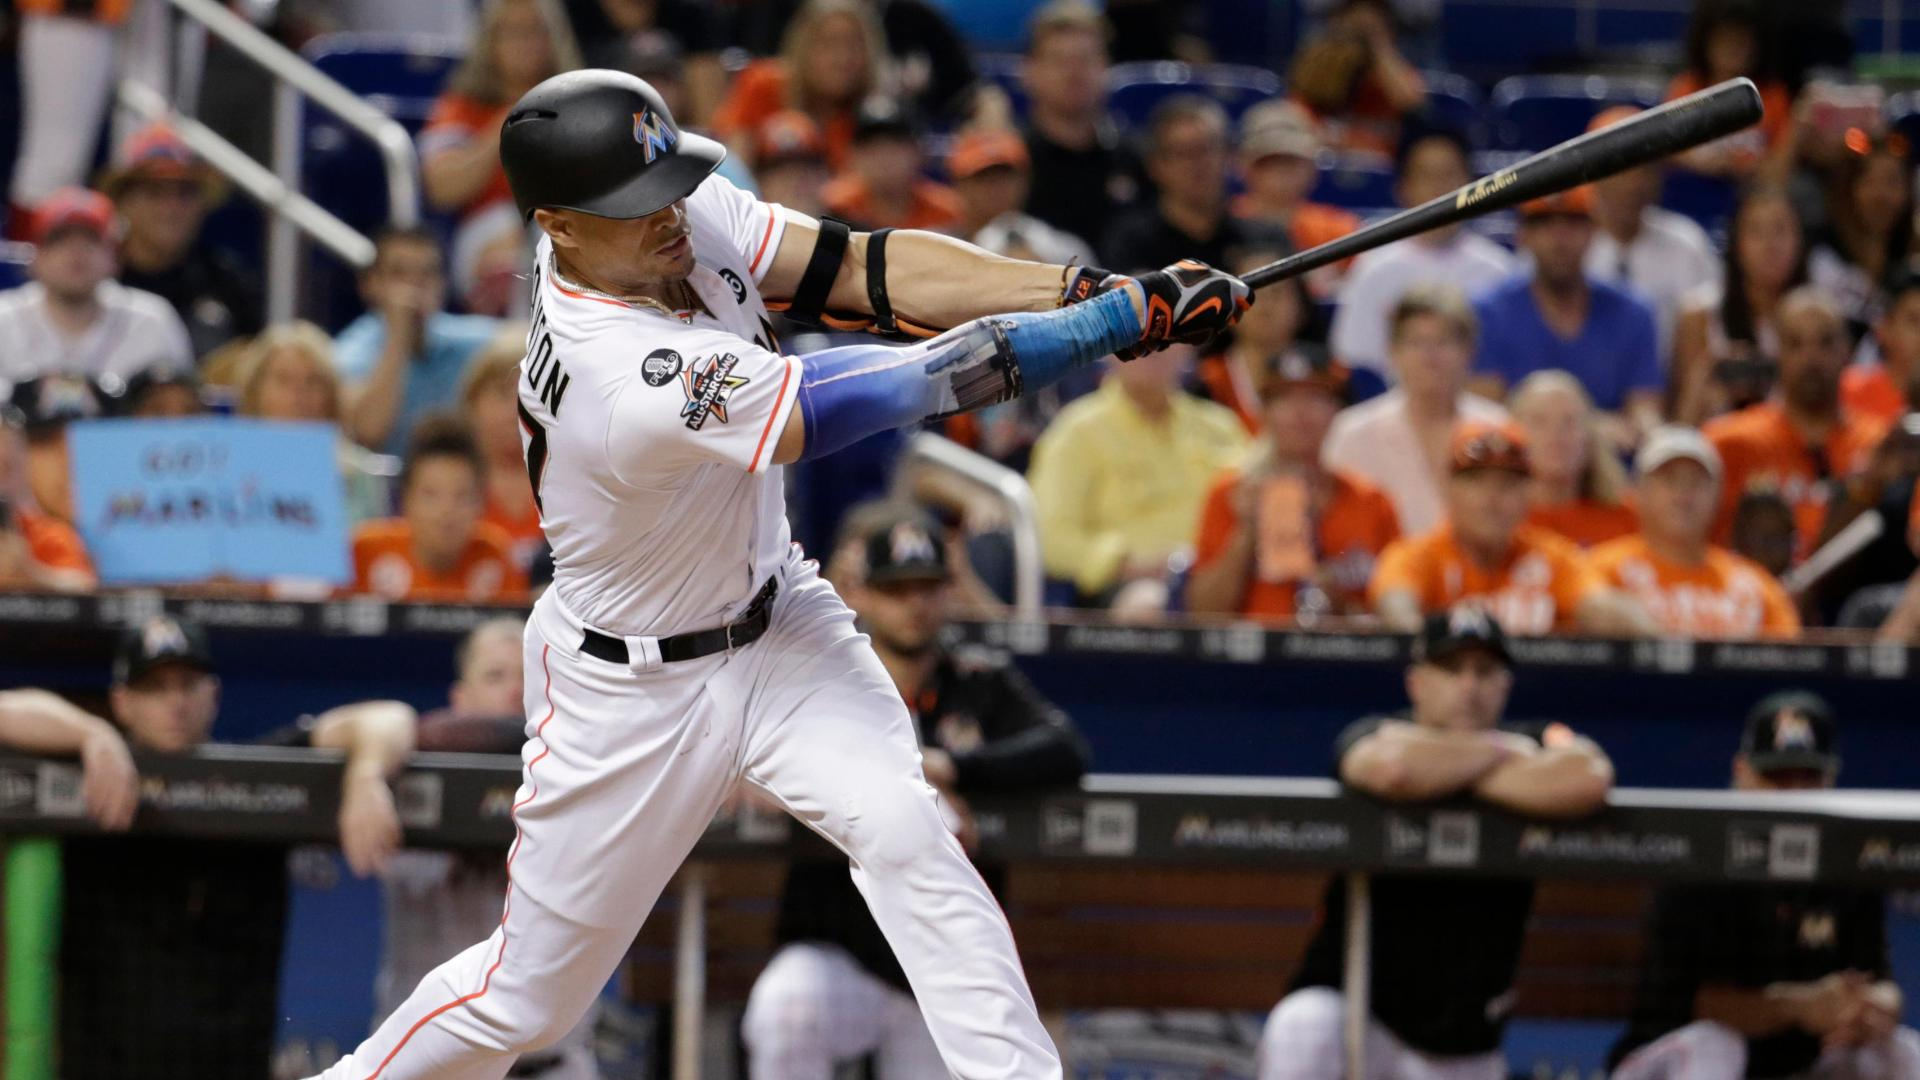 Olney: 'It's all up to Stanton'